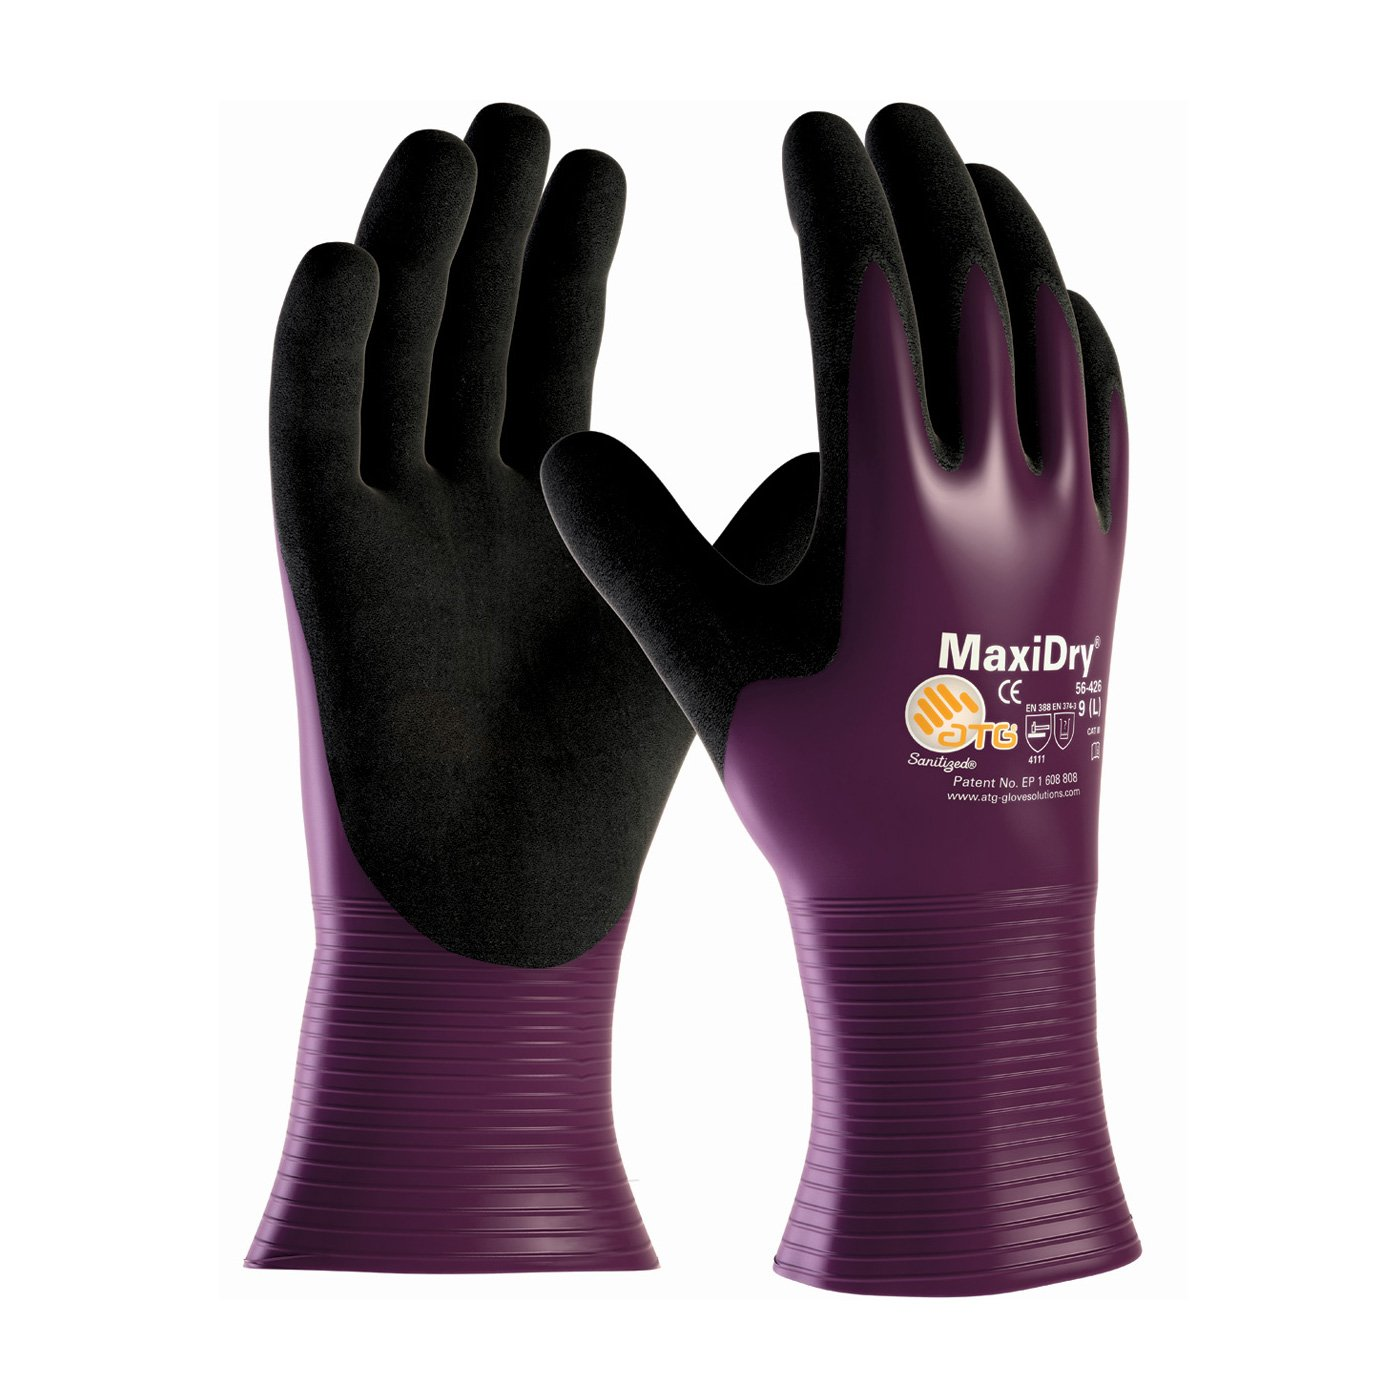 ATG 56-426/10 Gauntlet Silicone Free Nitrile Safety and Work Wear Gloves, Purple, X-Large